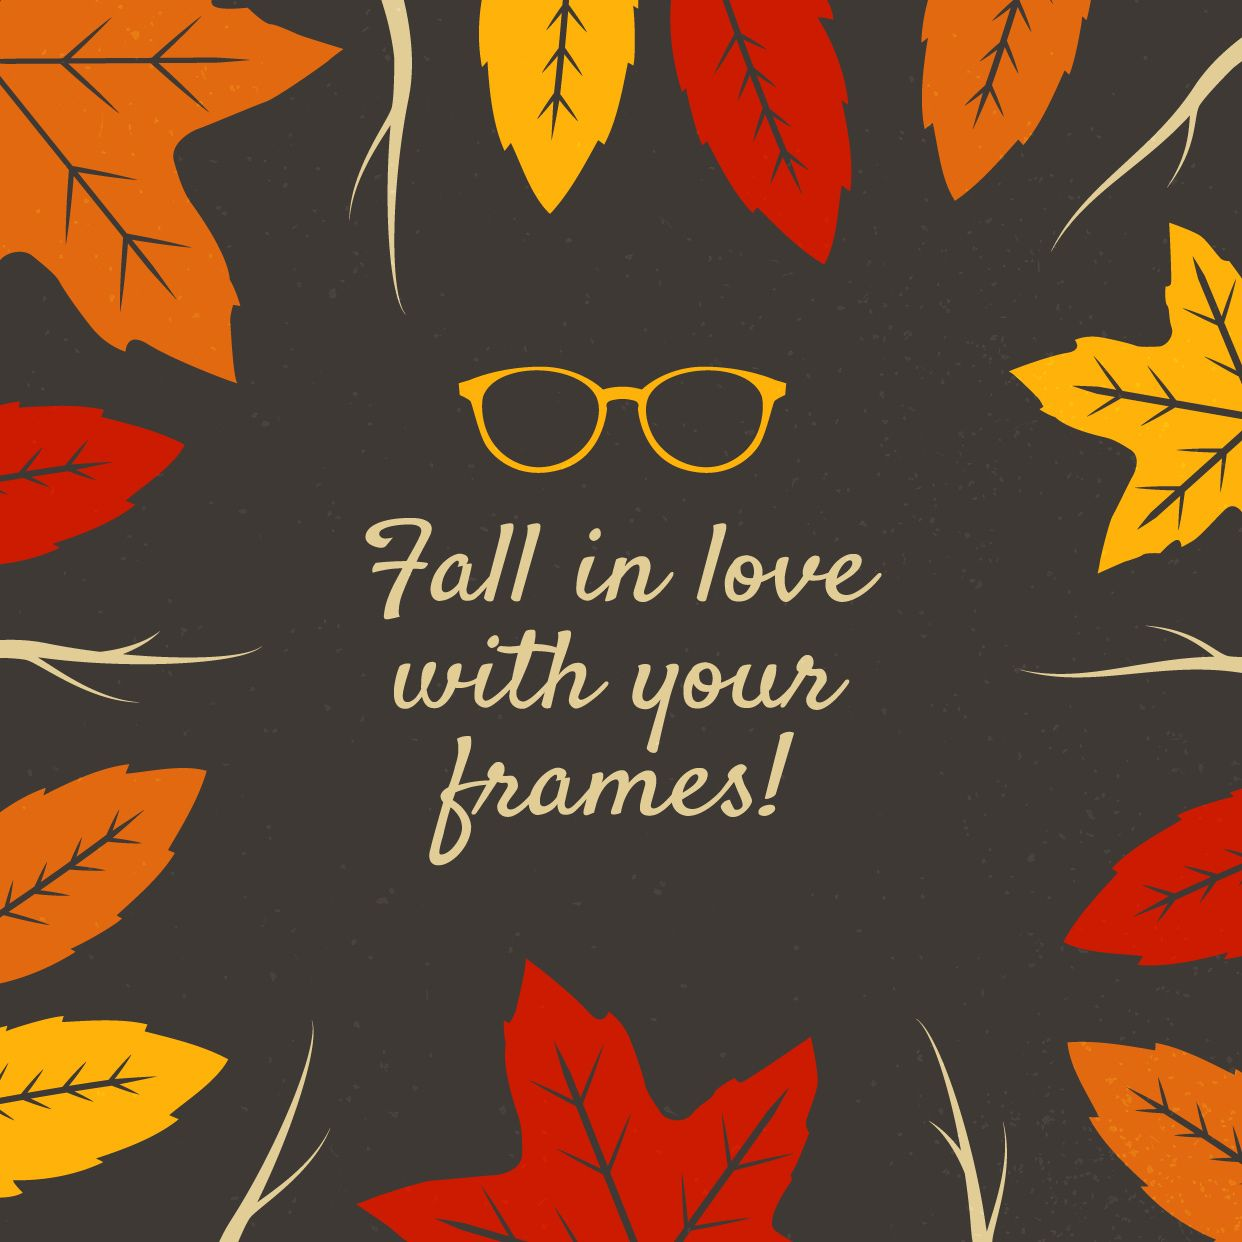 24915212b651 FALL IS A GREAT TIME to fall in love with new frames! Update your  prescription and check out our great frames selection!